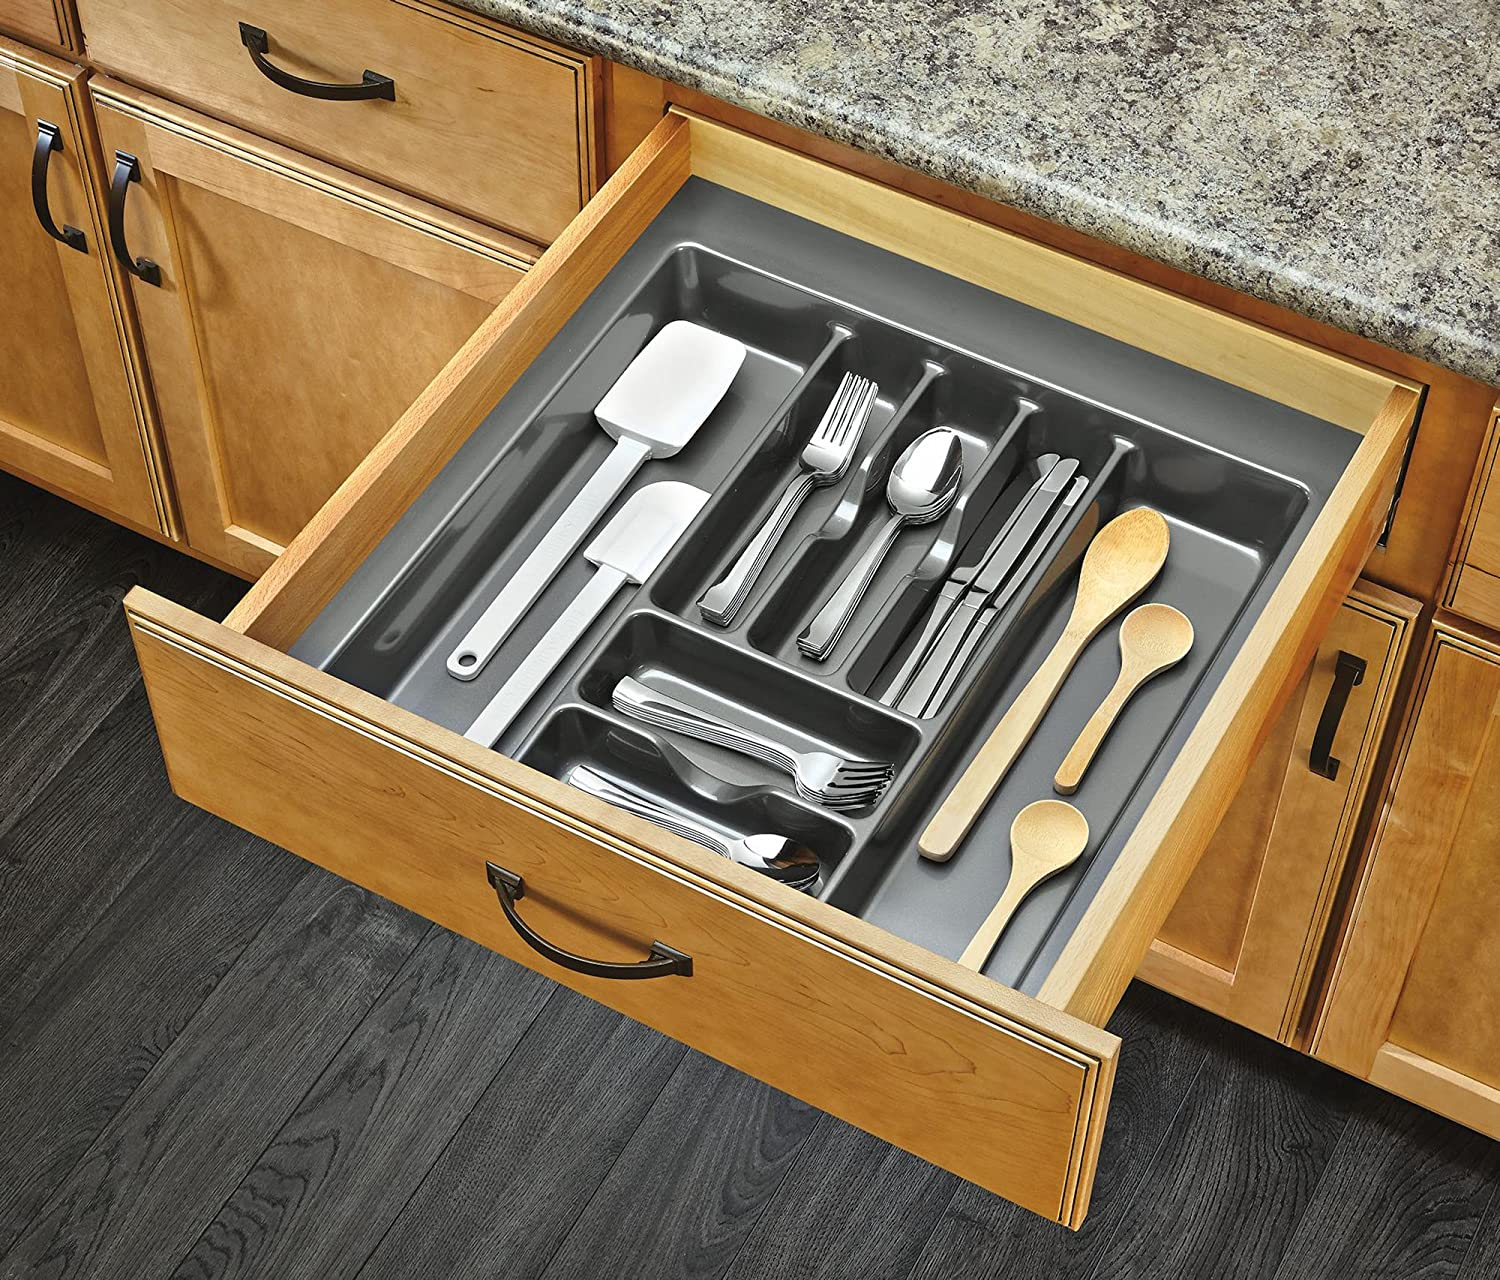 cabinet dividers amazon expandable inserts drawer beautiful drawers inspirational kitchen house cutlery bamboo blog of harmony tray utensil